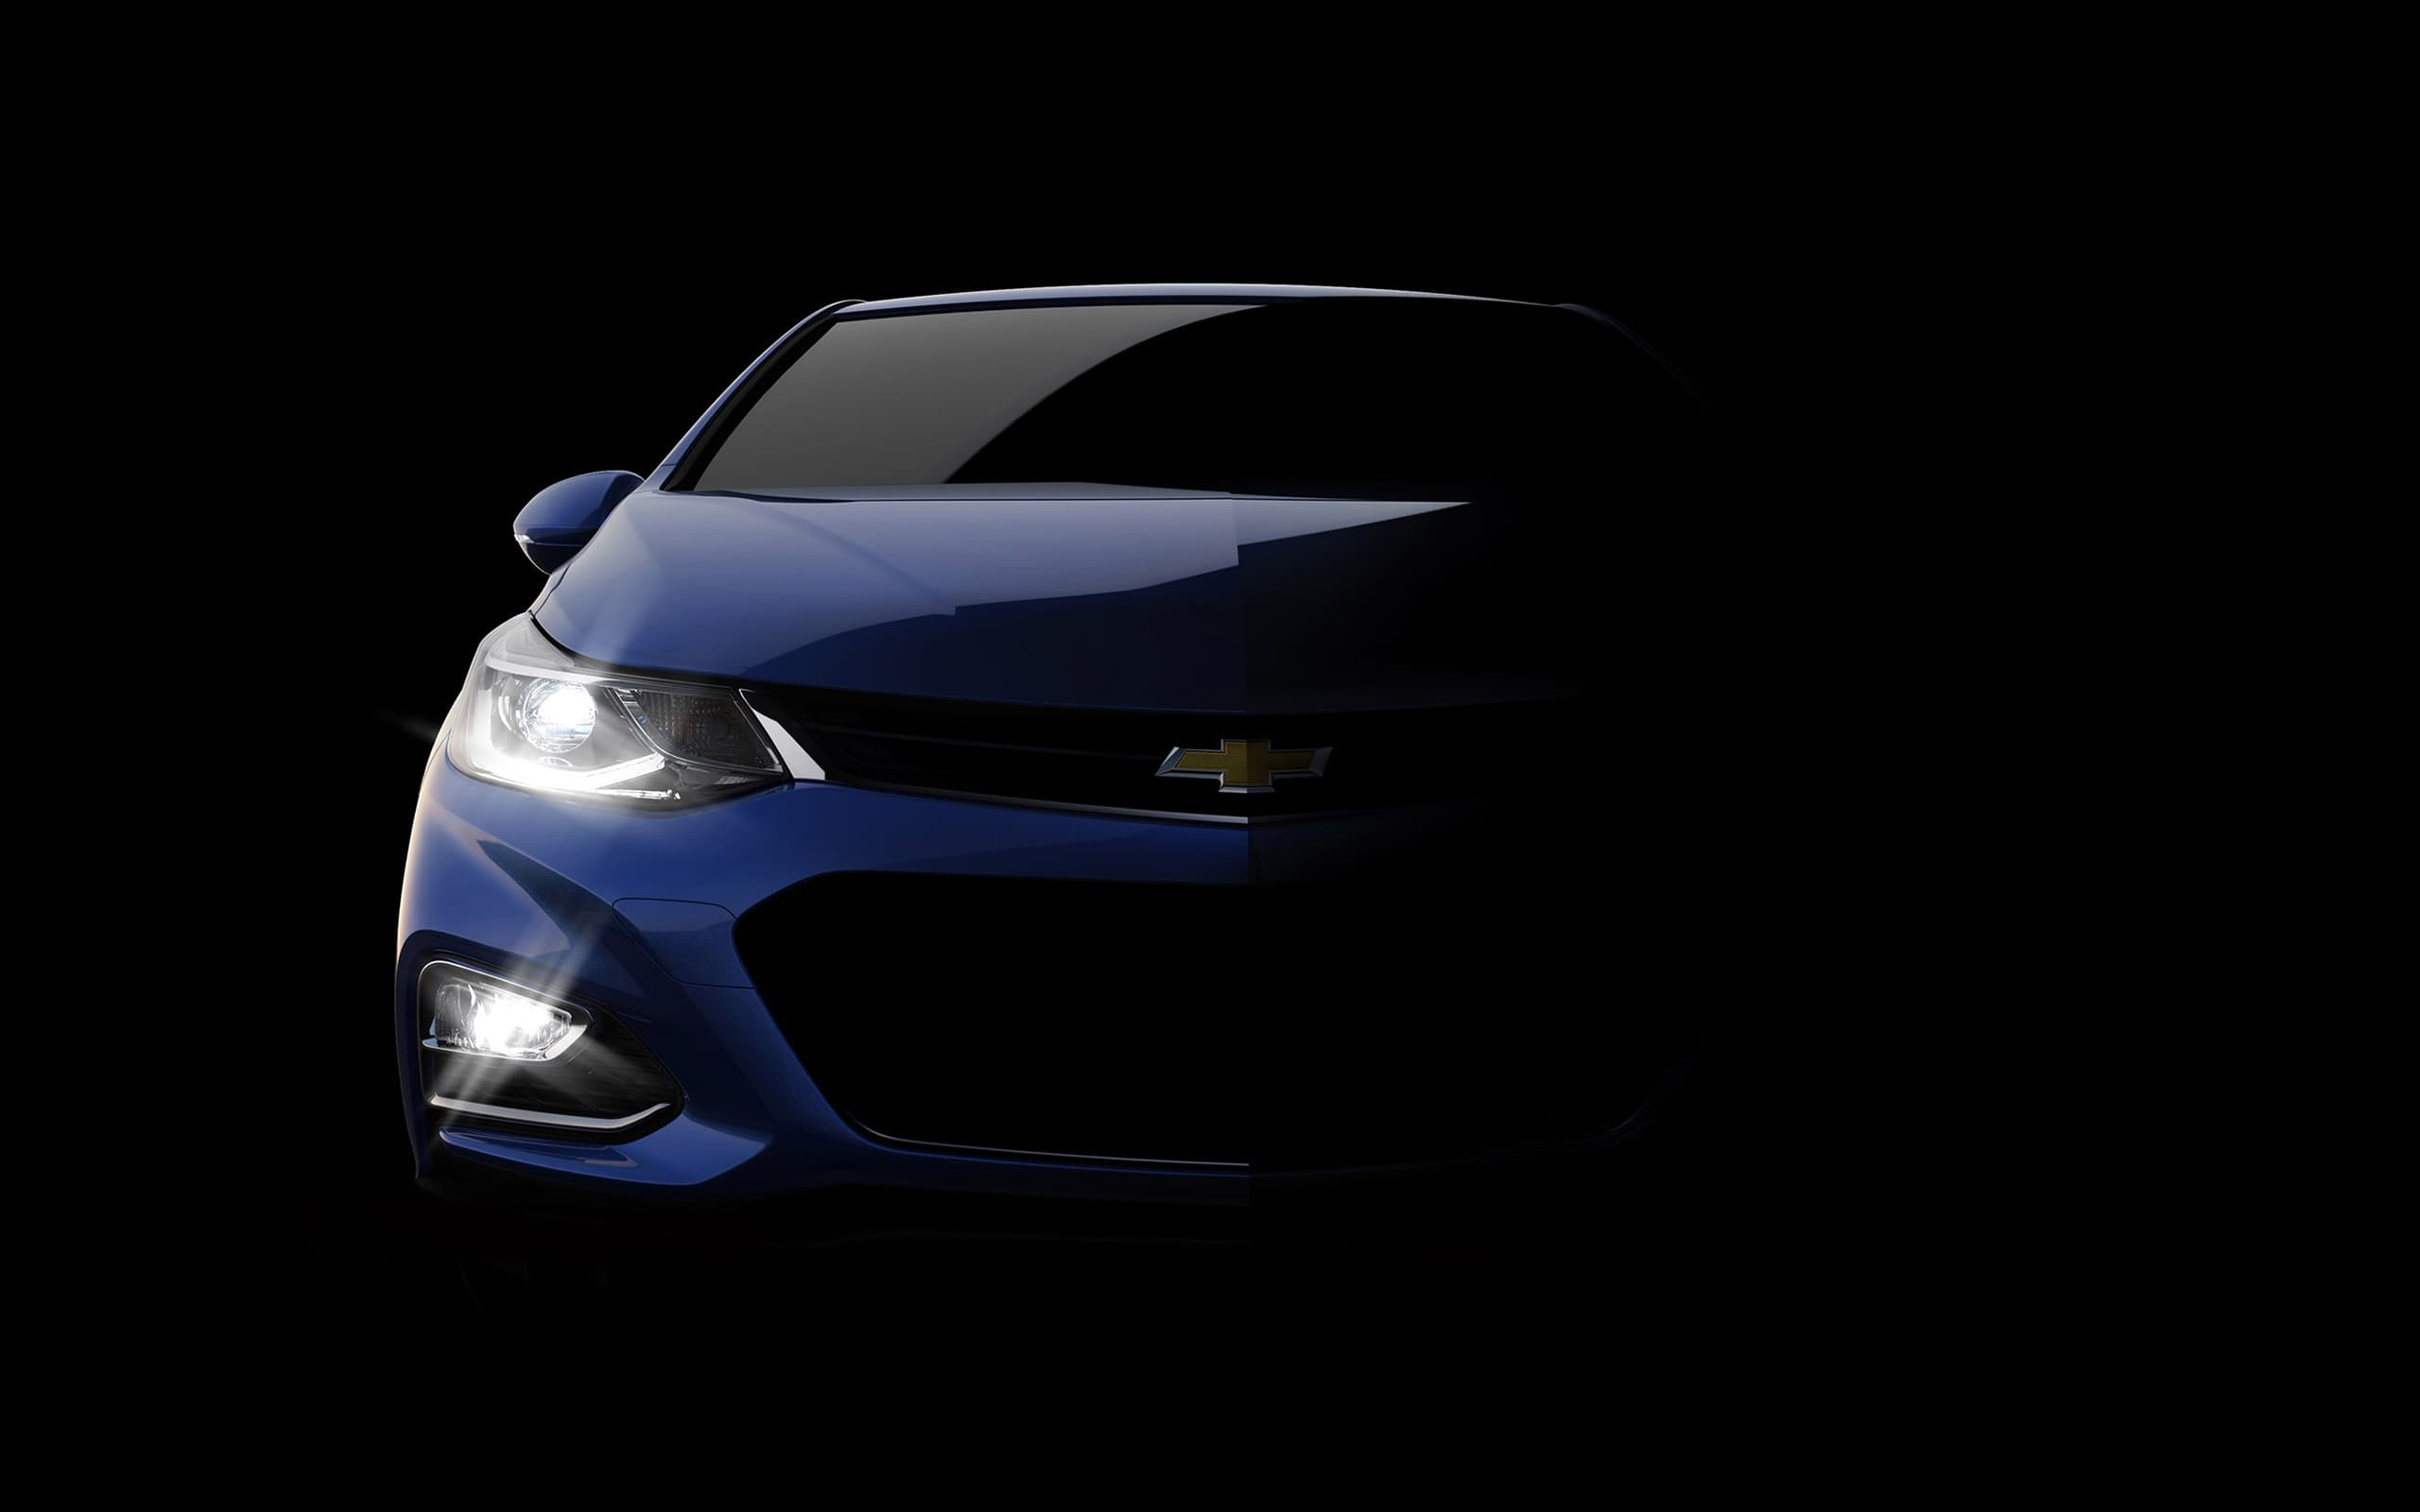 68 All New Chevy Cruze Wallpapers Spy Shoot by Chevy Cruze Wallpapers